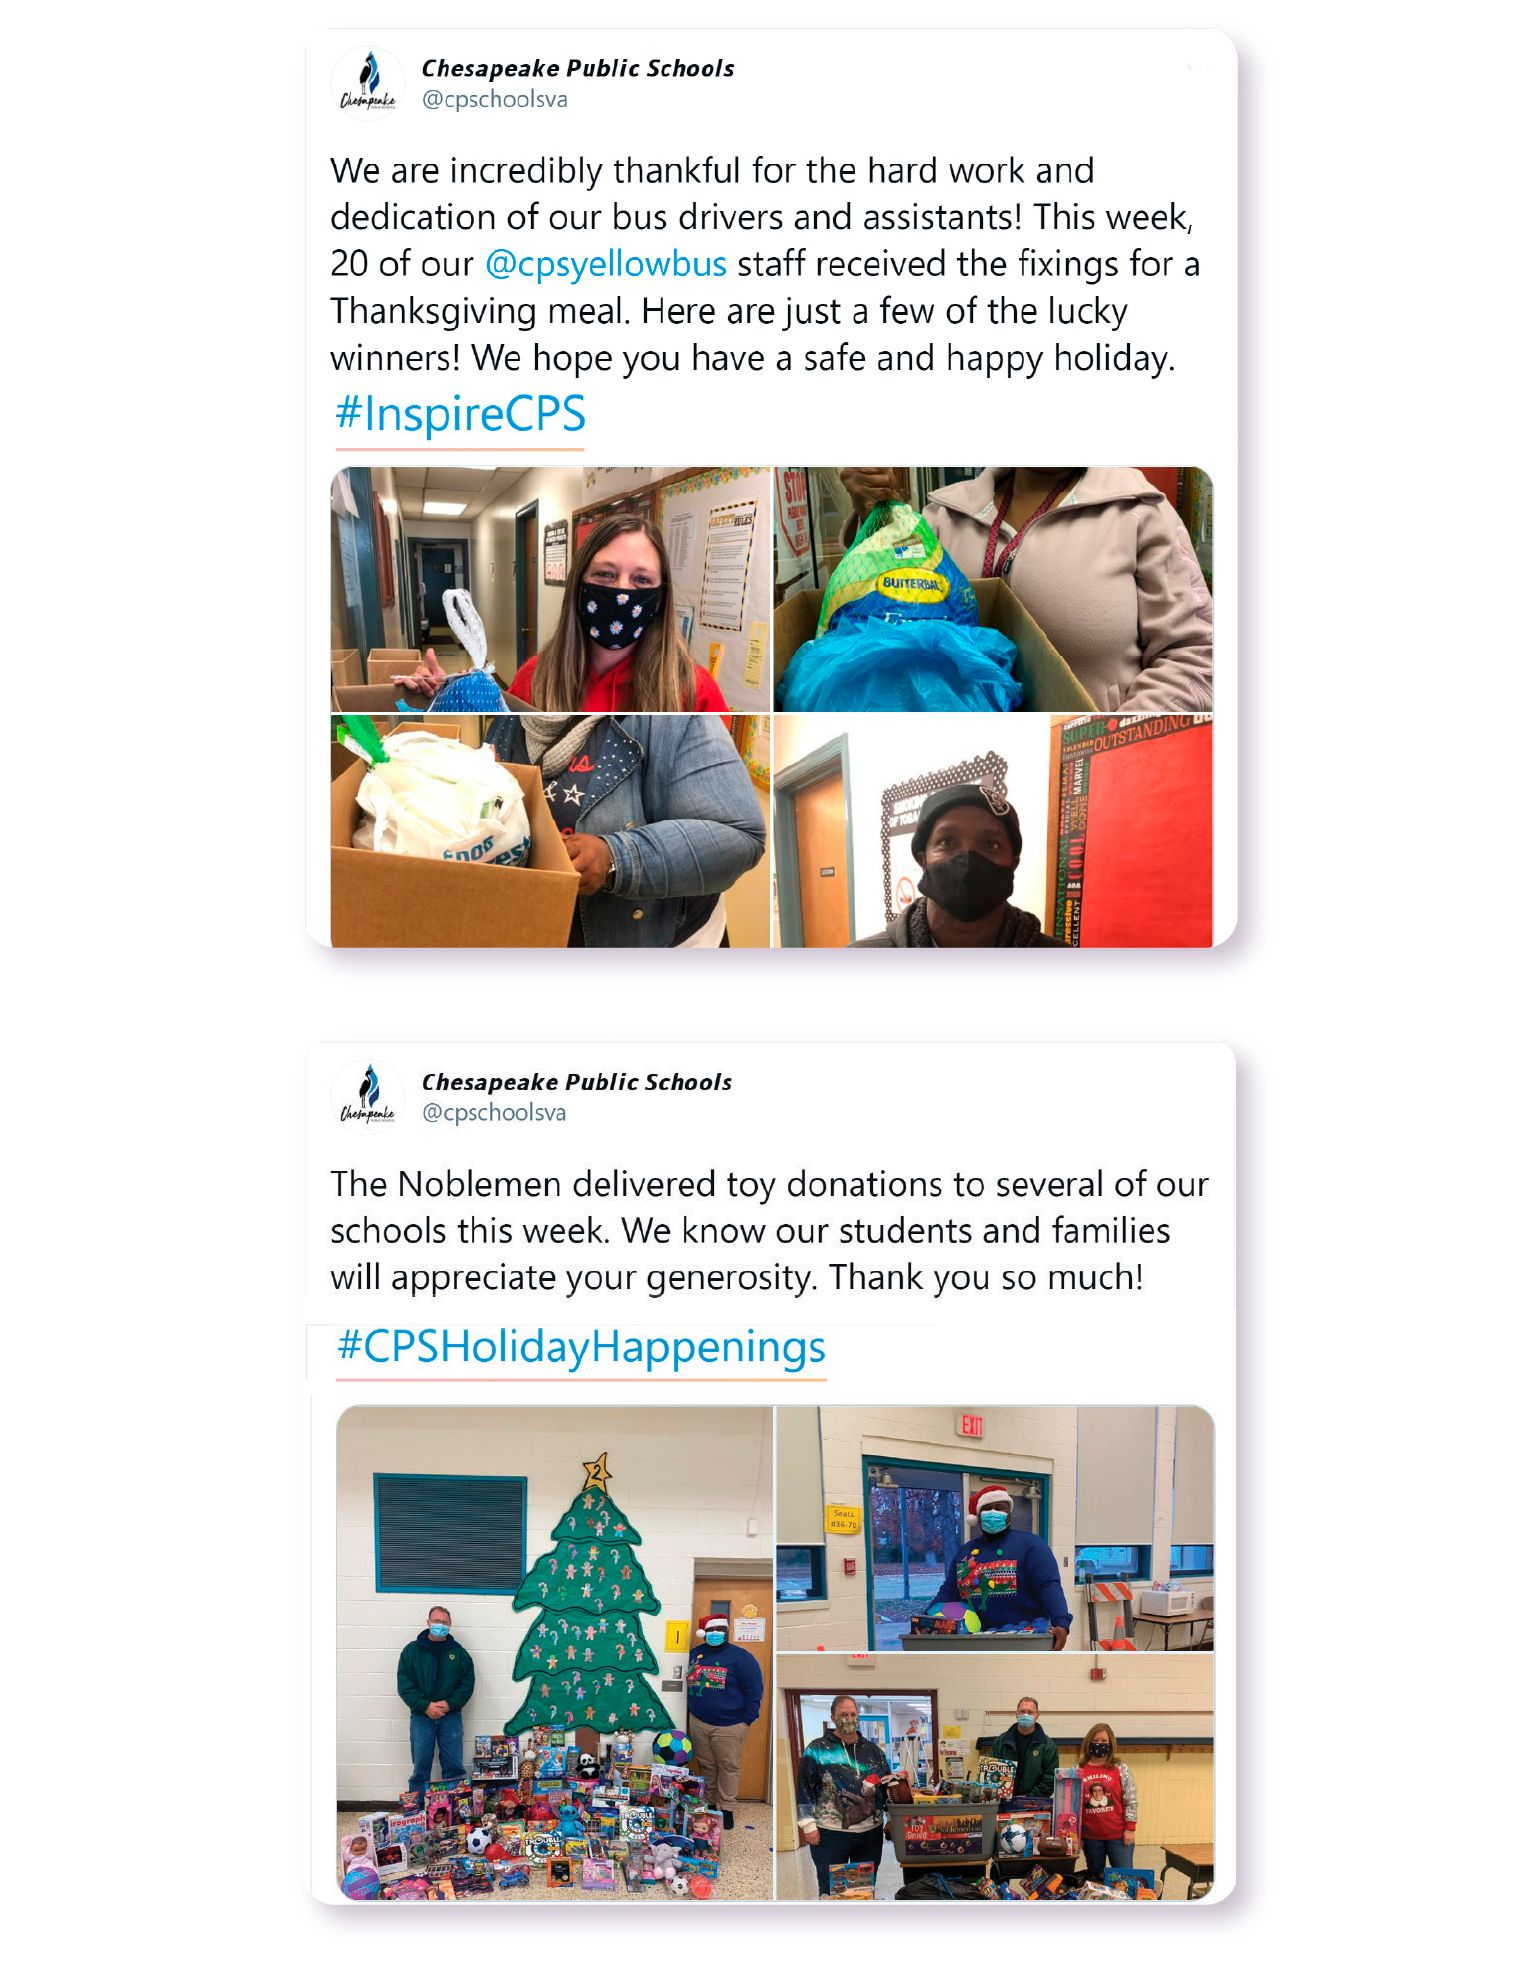 Image: In one Twitter post, Chesapeake Public Schools highlights their bus drivers while using the #InspireCPS hashtag. In another, the district celebrates a toy donation with the hashtag #CPSHolidayHappenings.